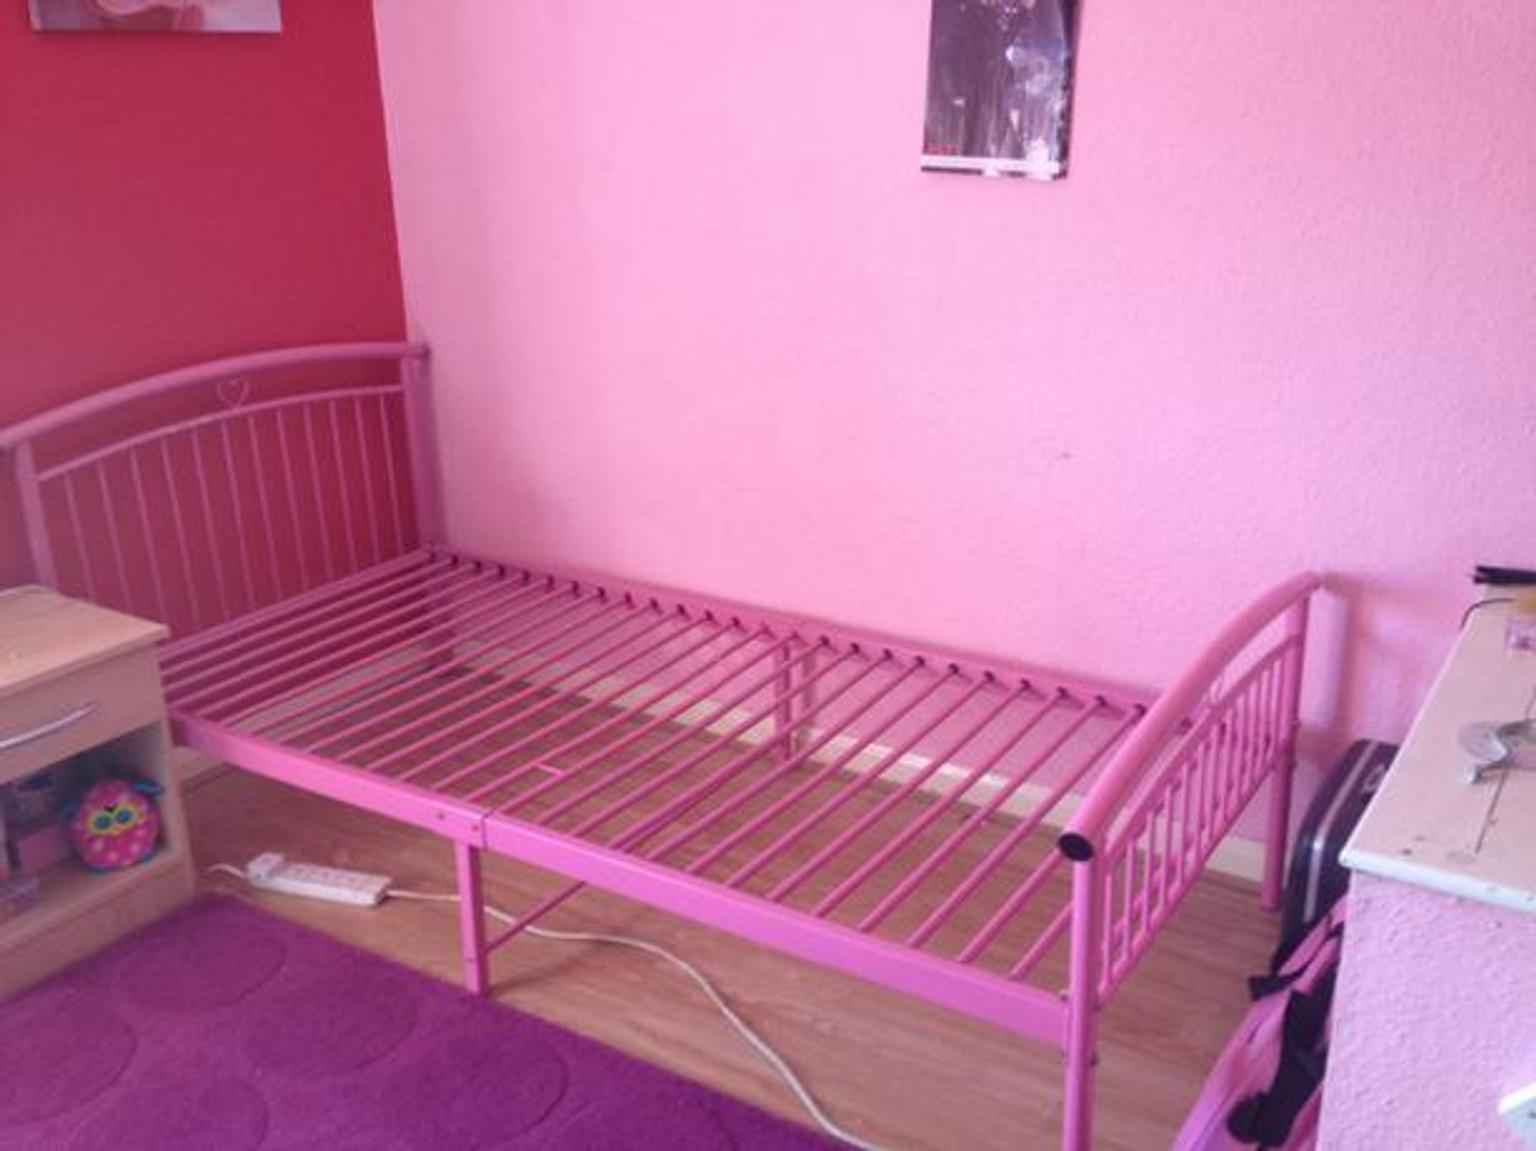 Pink Metal Single Bed Frame In B43 Walsall For 20 00 For Sale Shpock